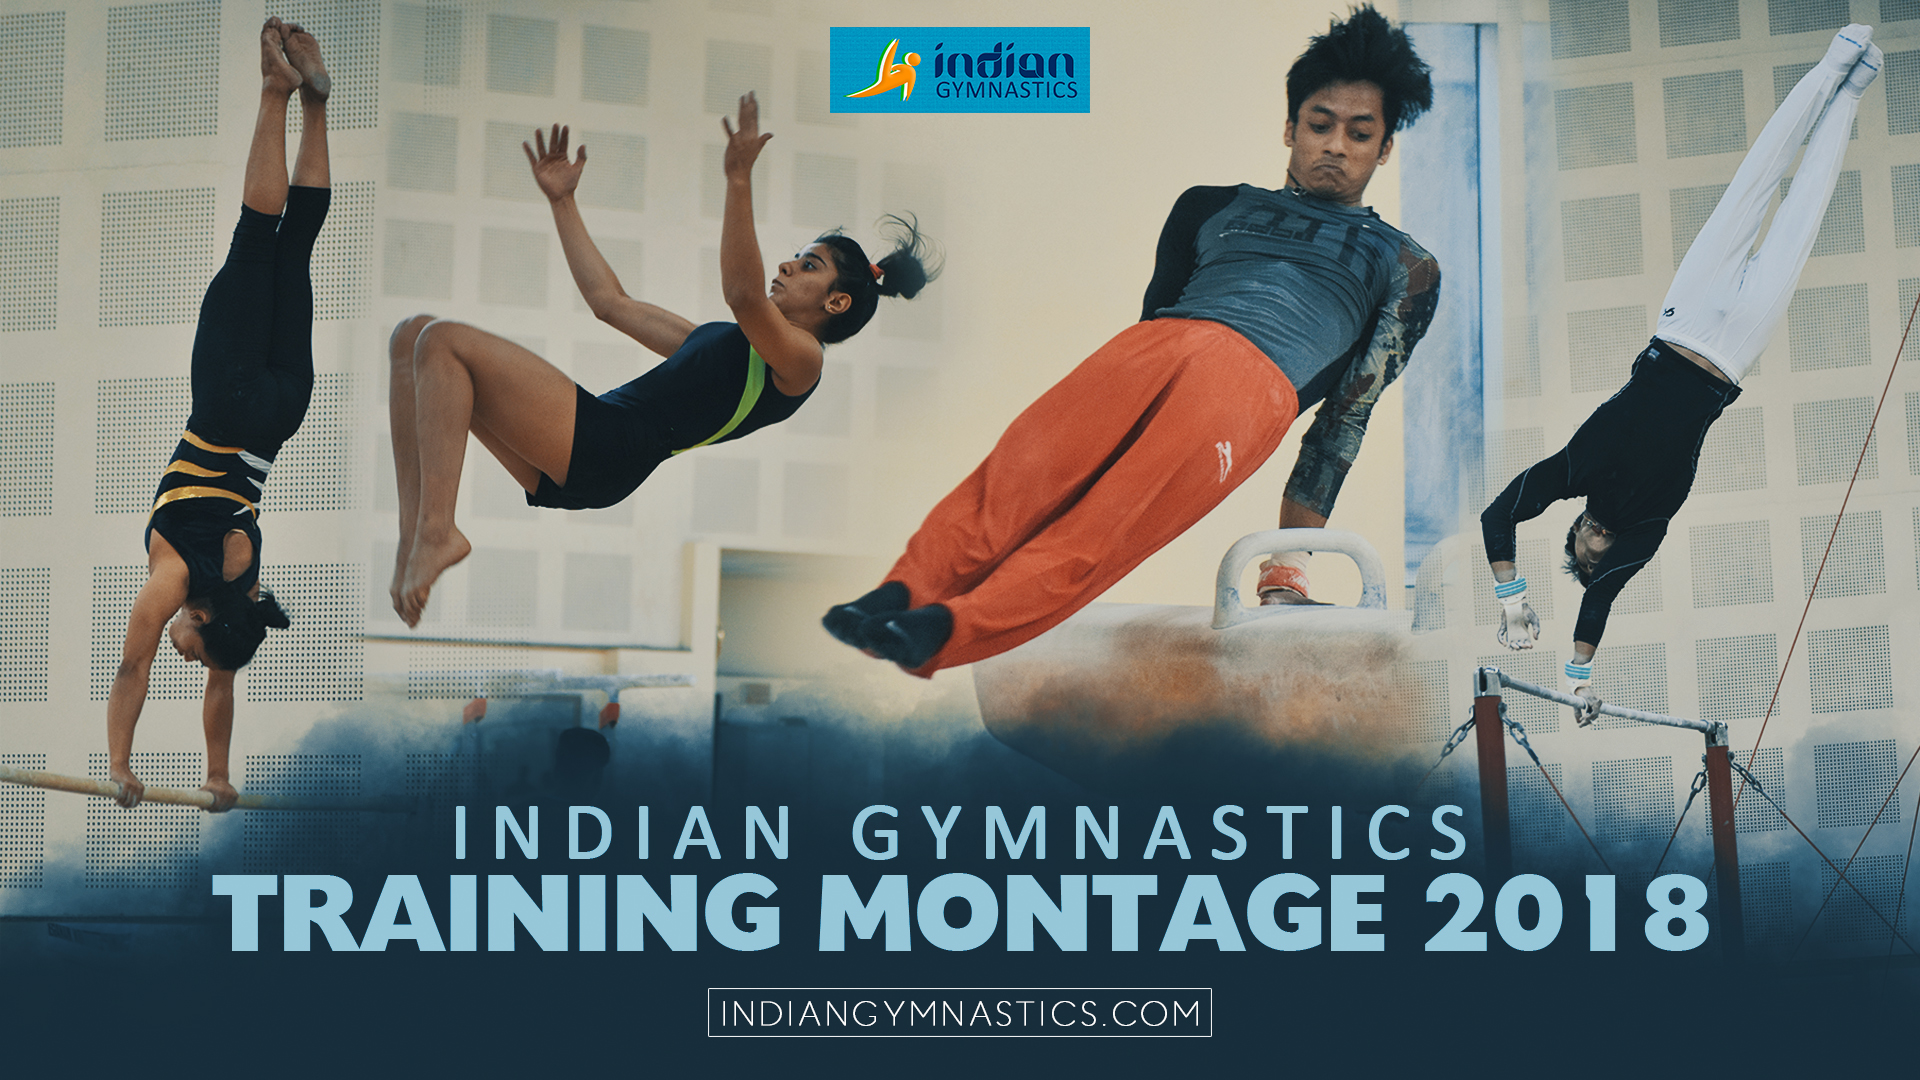 Indian Gymnastics Training Montage 2018